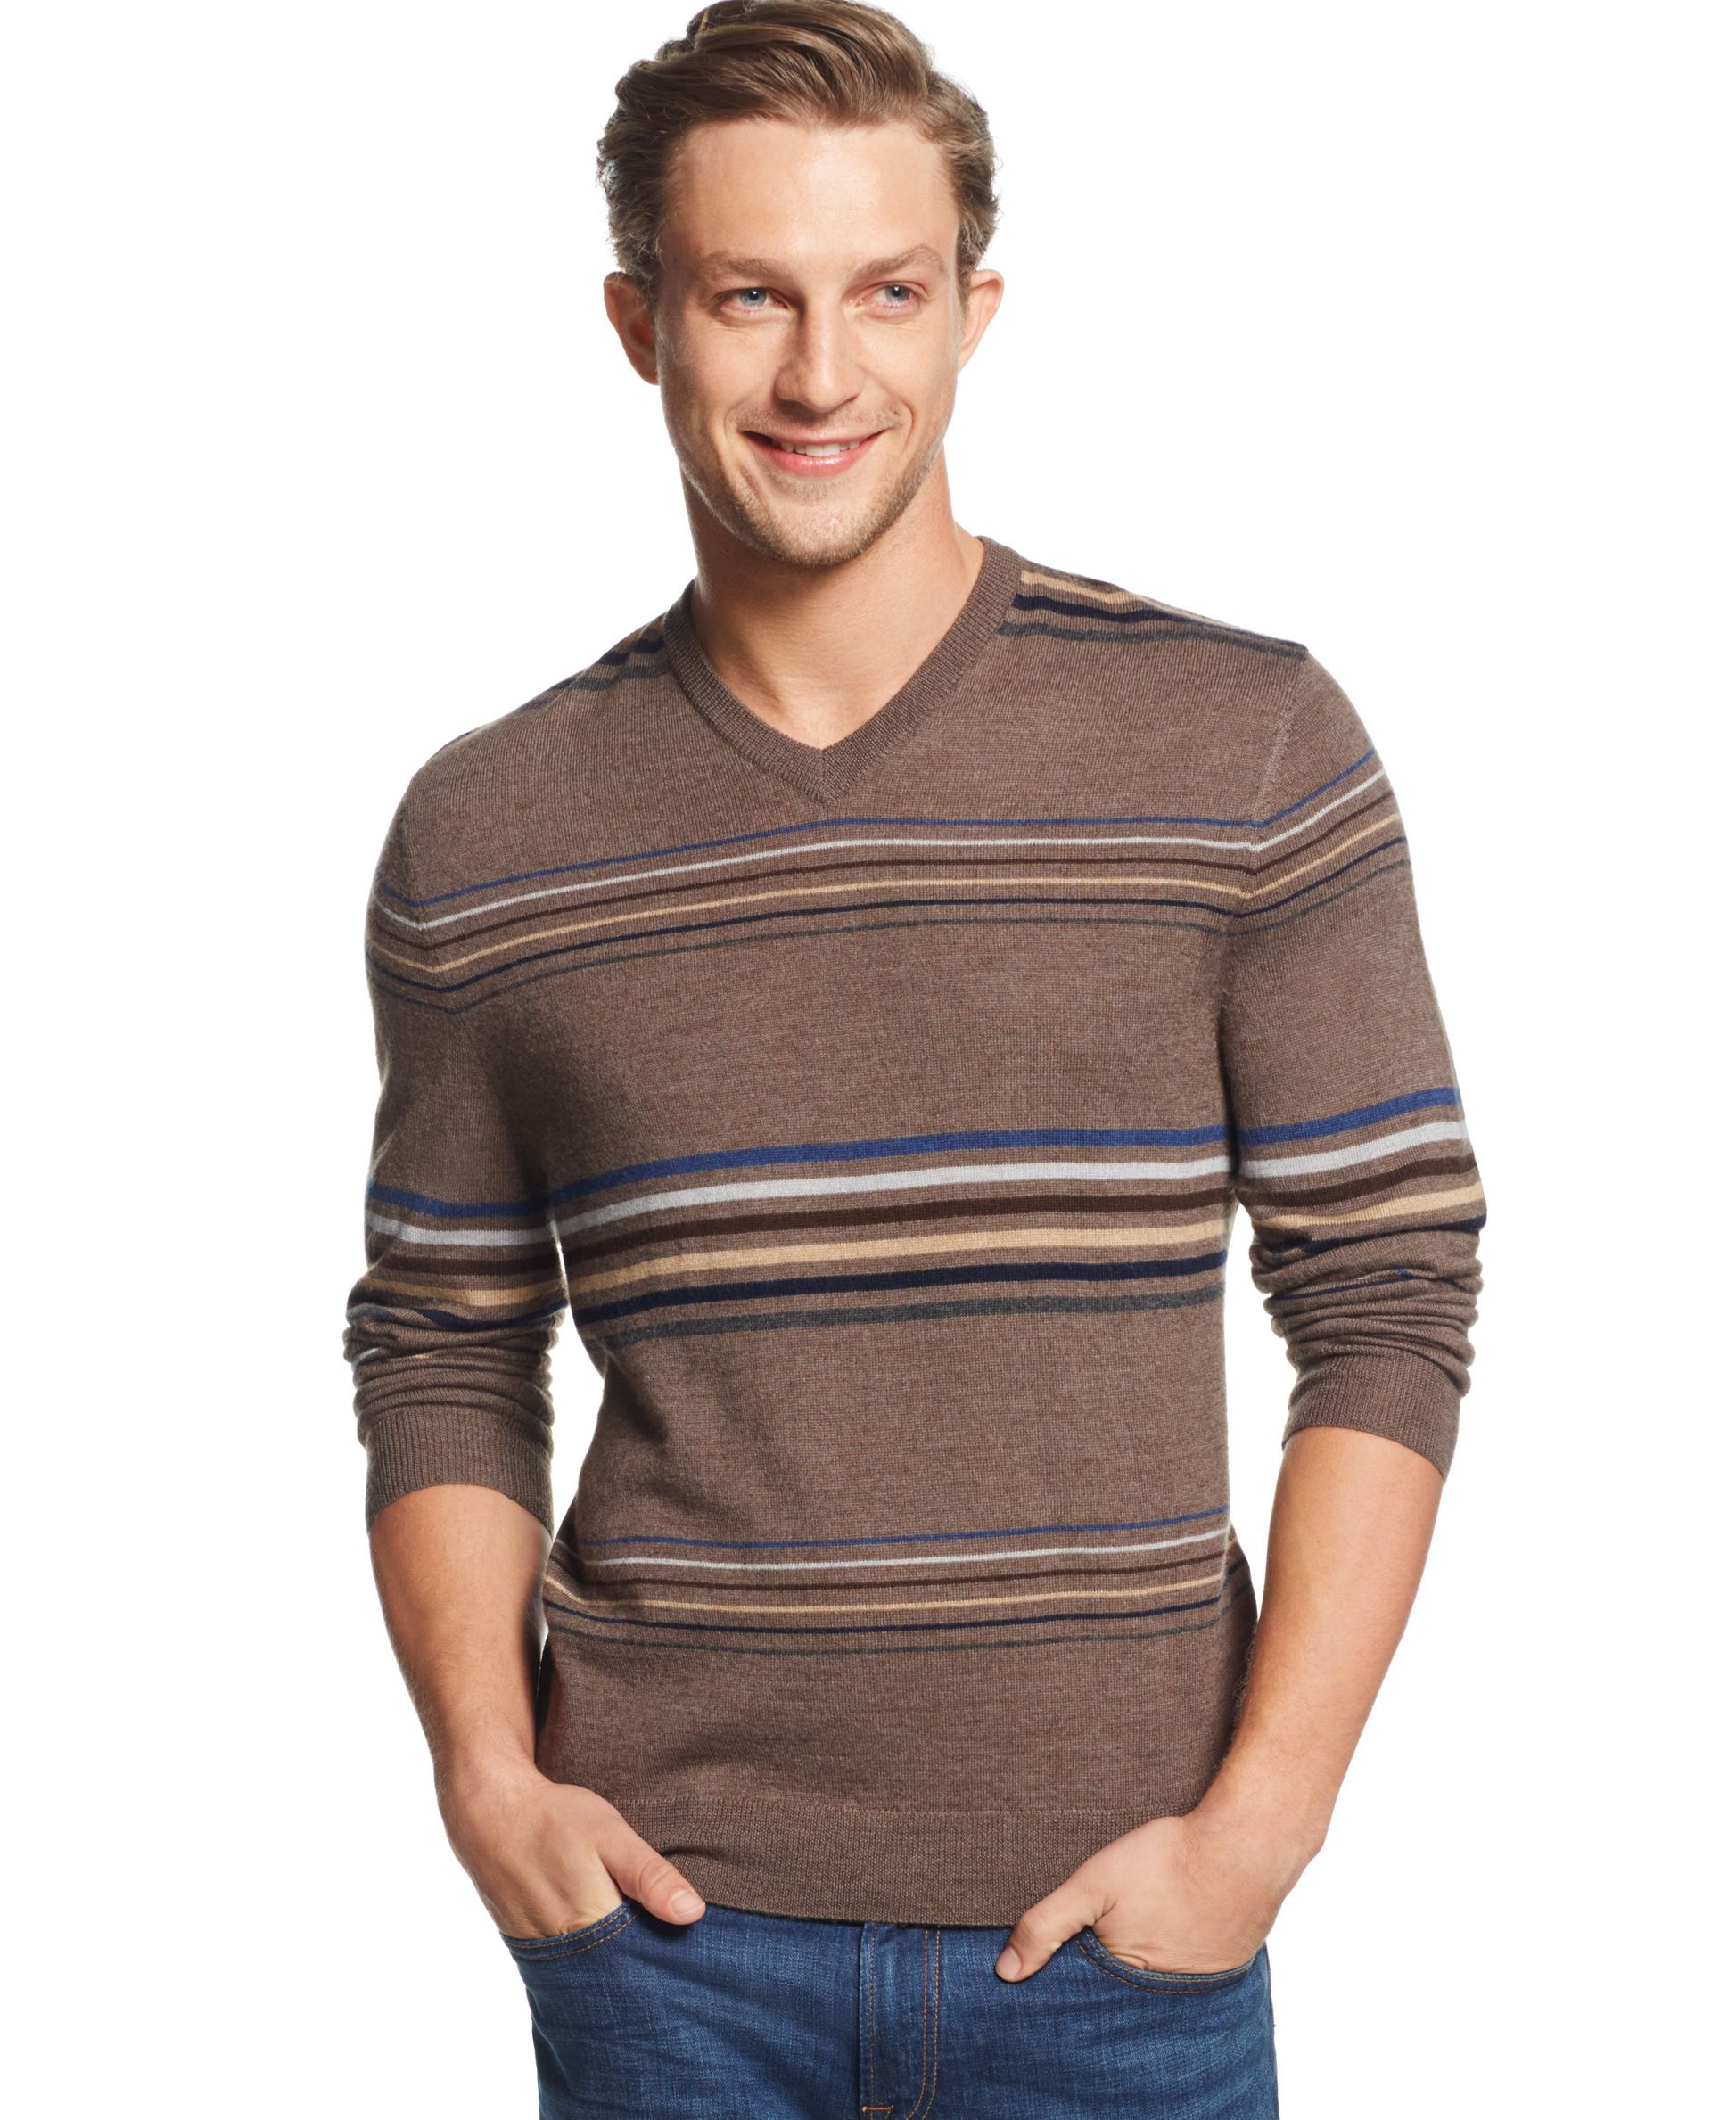 Club Room Birdseye Striped V-Neck Sweater, Only at Macy's